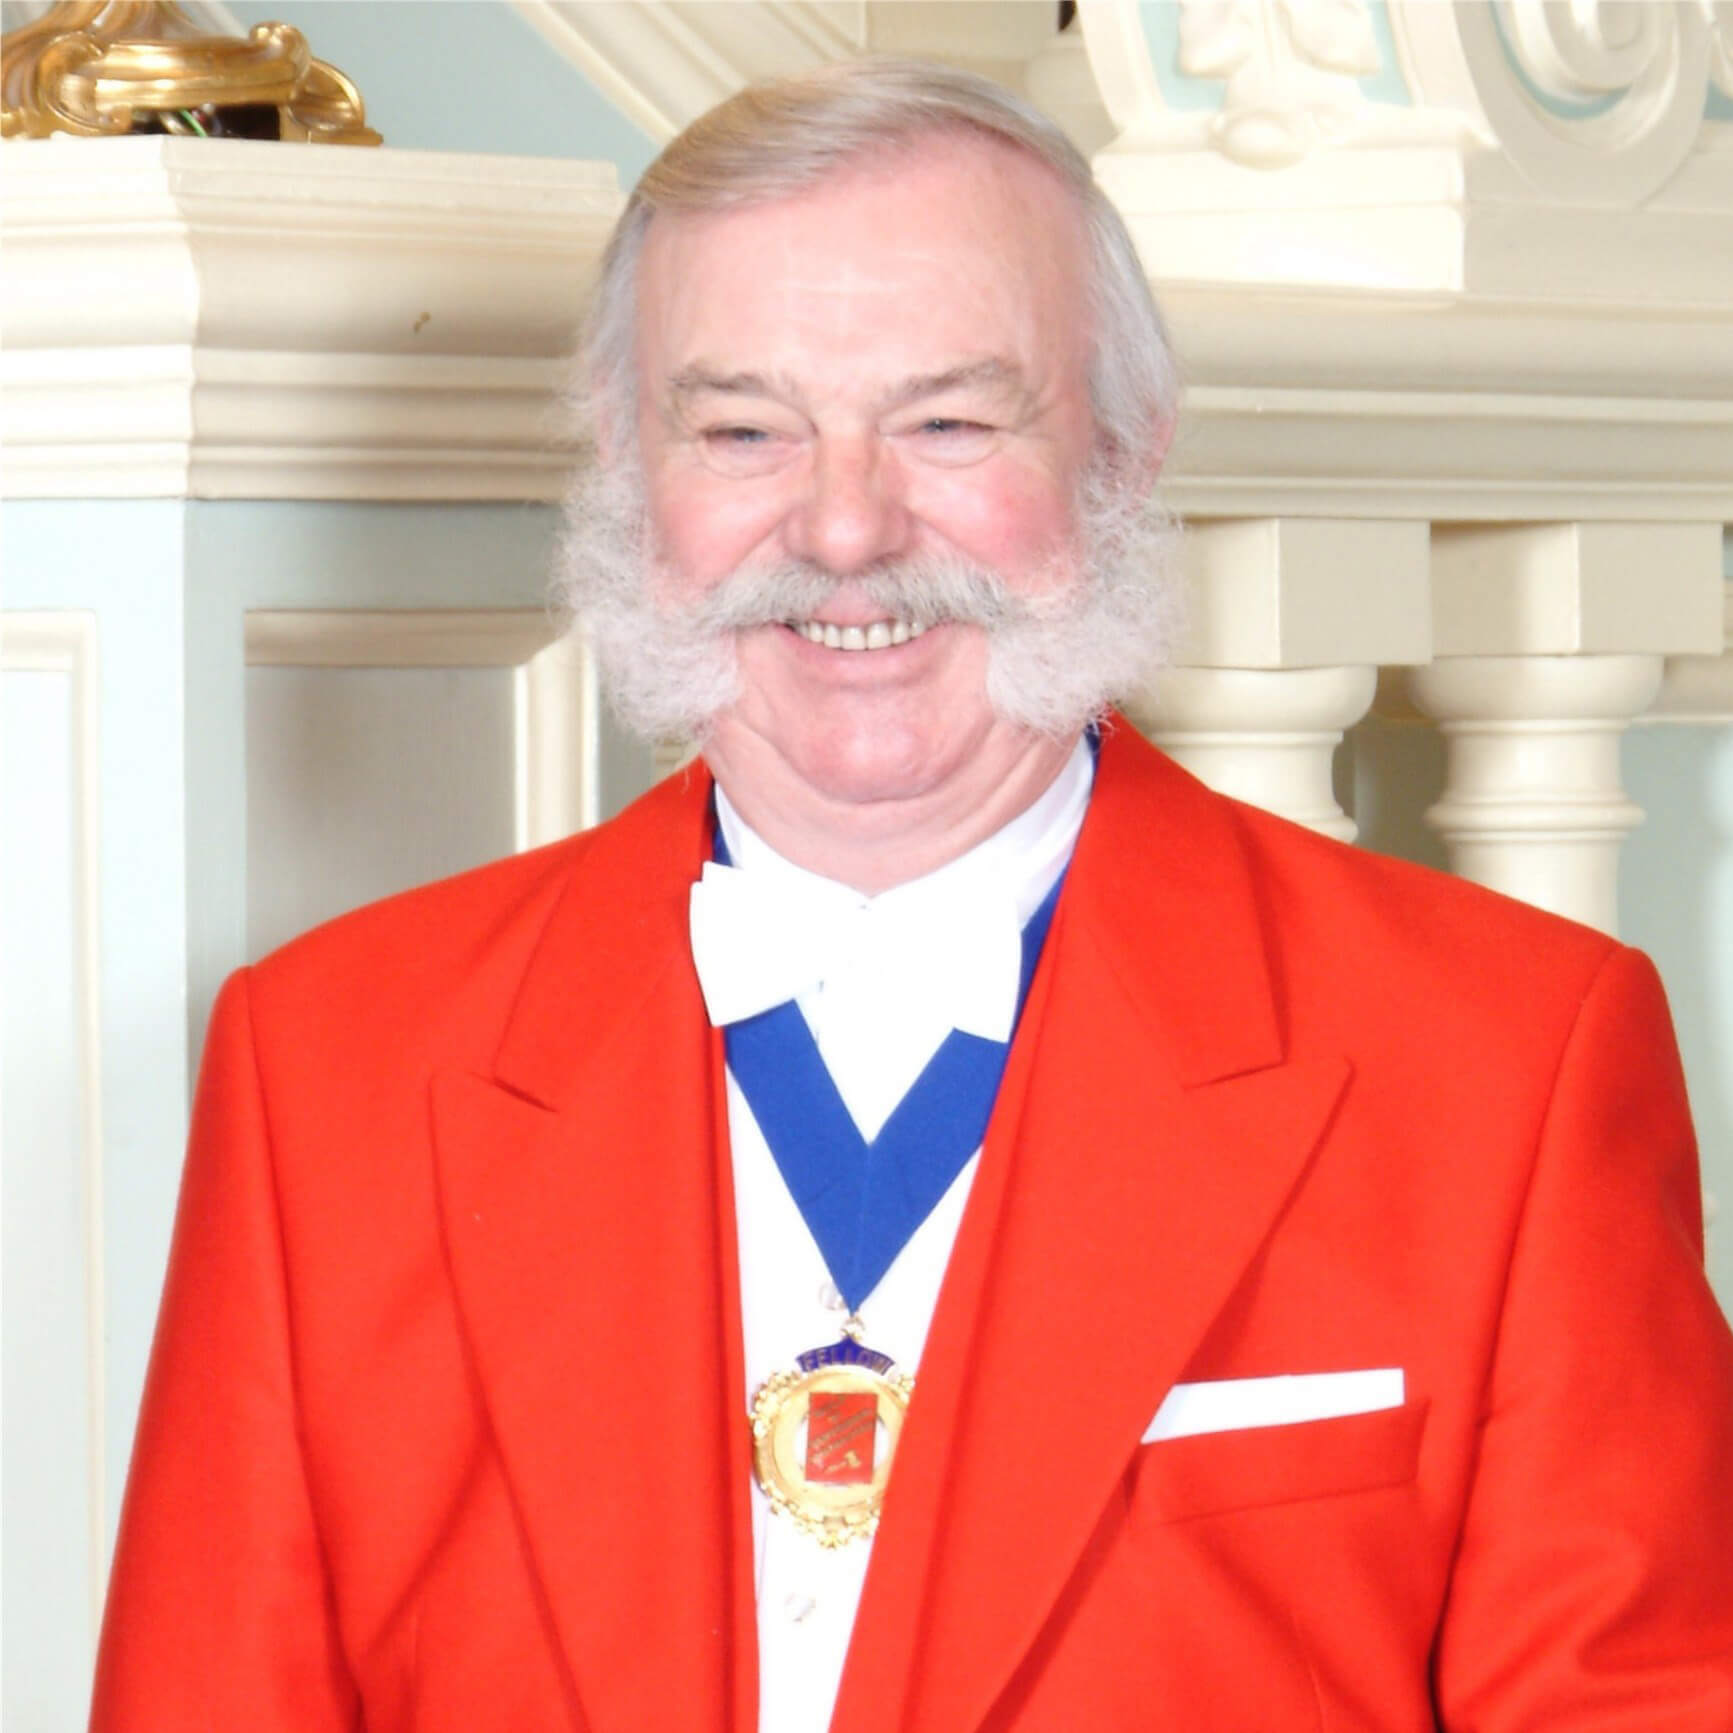 Professional Toastmaster and Master of Ceremonies Hertfordshire - Brian Sanders